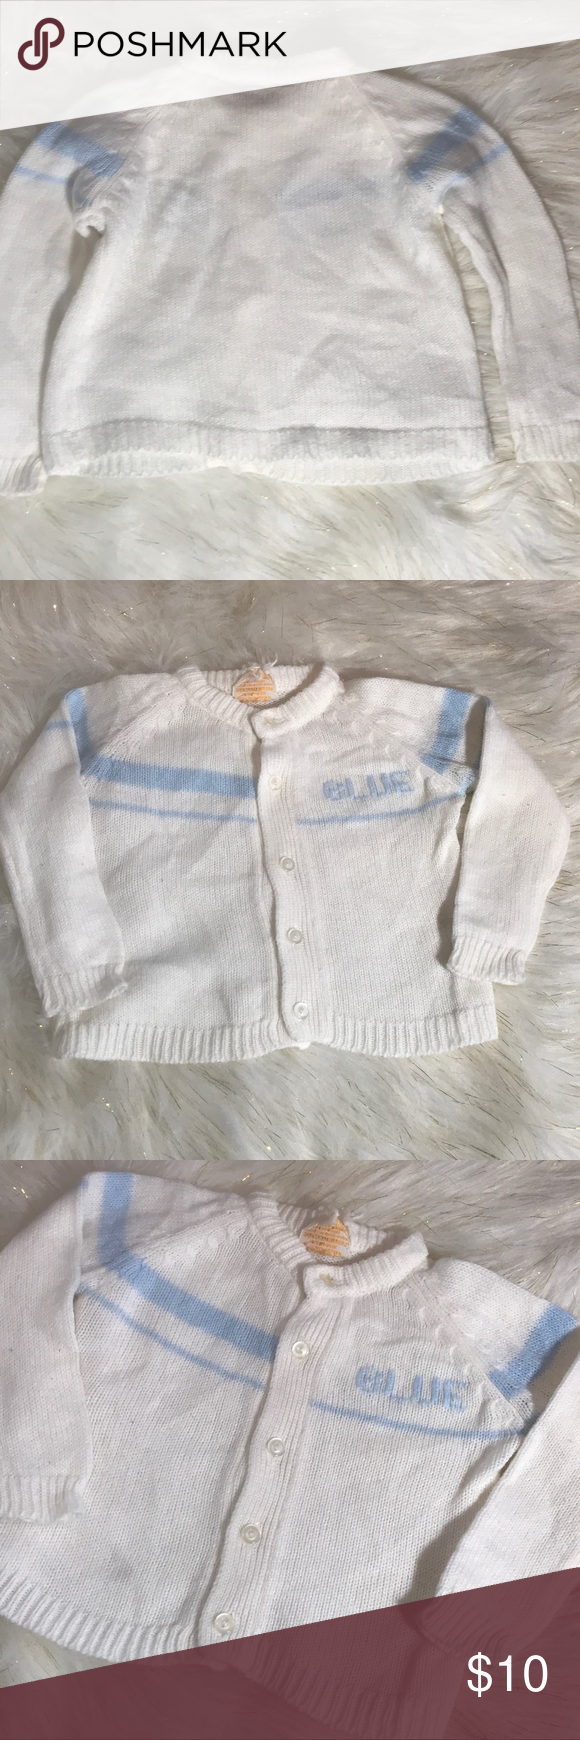 Clothing, Shoes & Accessories Baby & Toddler Clothing Vintage Baby Boys Sweater Friemanit Size Medium